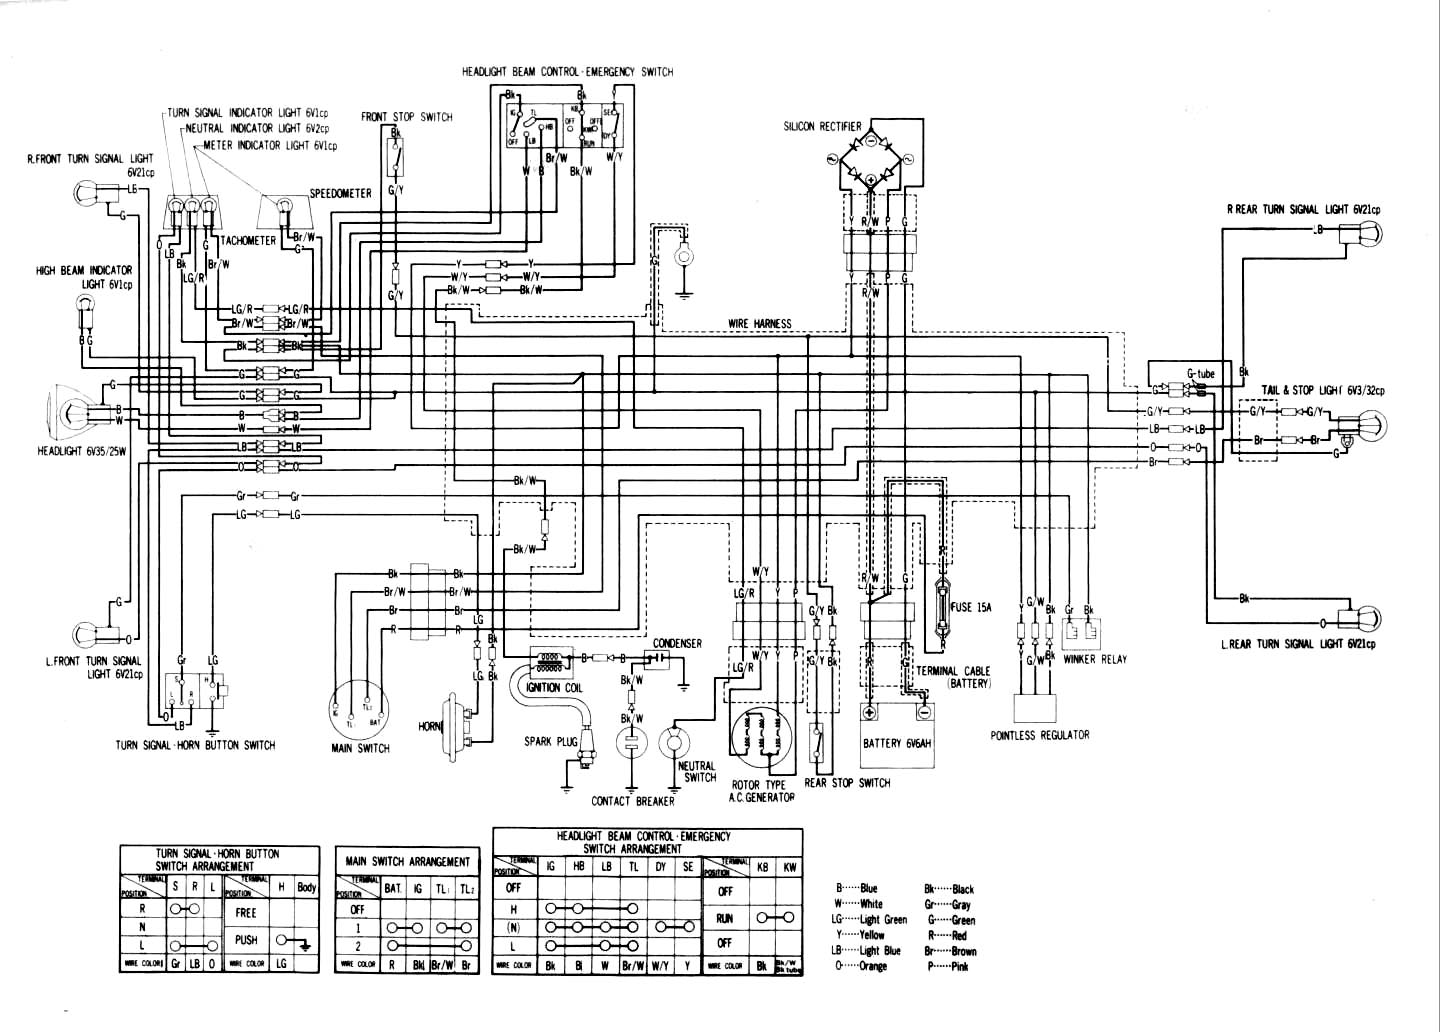 Honda Xl 125 Wiring Diagram - Schematic wiring diagramcamelotunchained.it